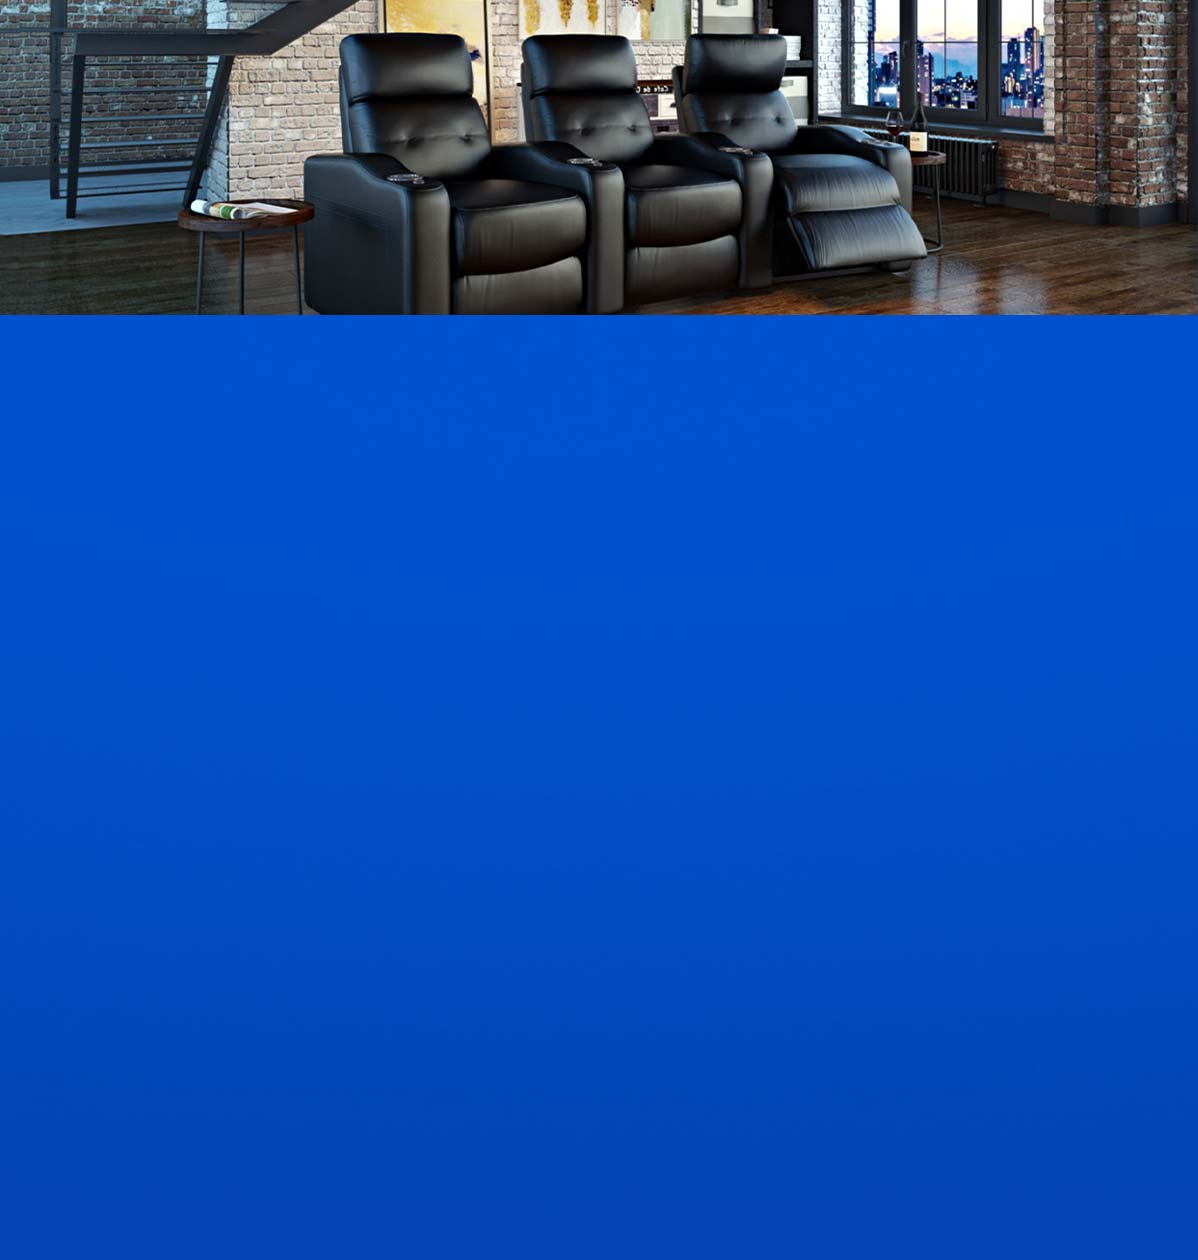 Home Theatre Seating Recliner Chairs Love Seats Best Buy Canada